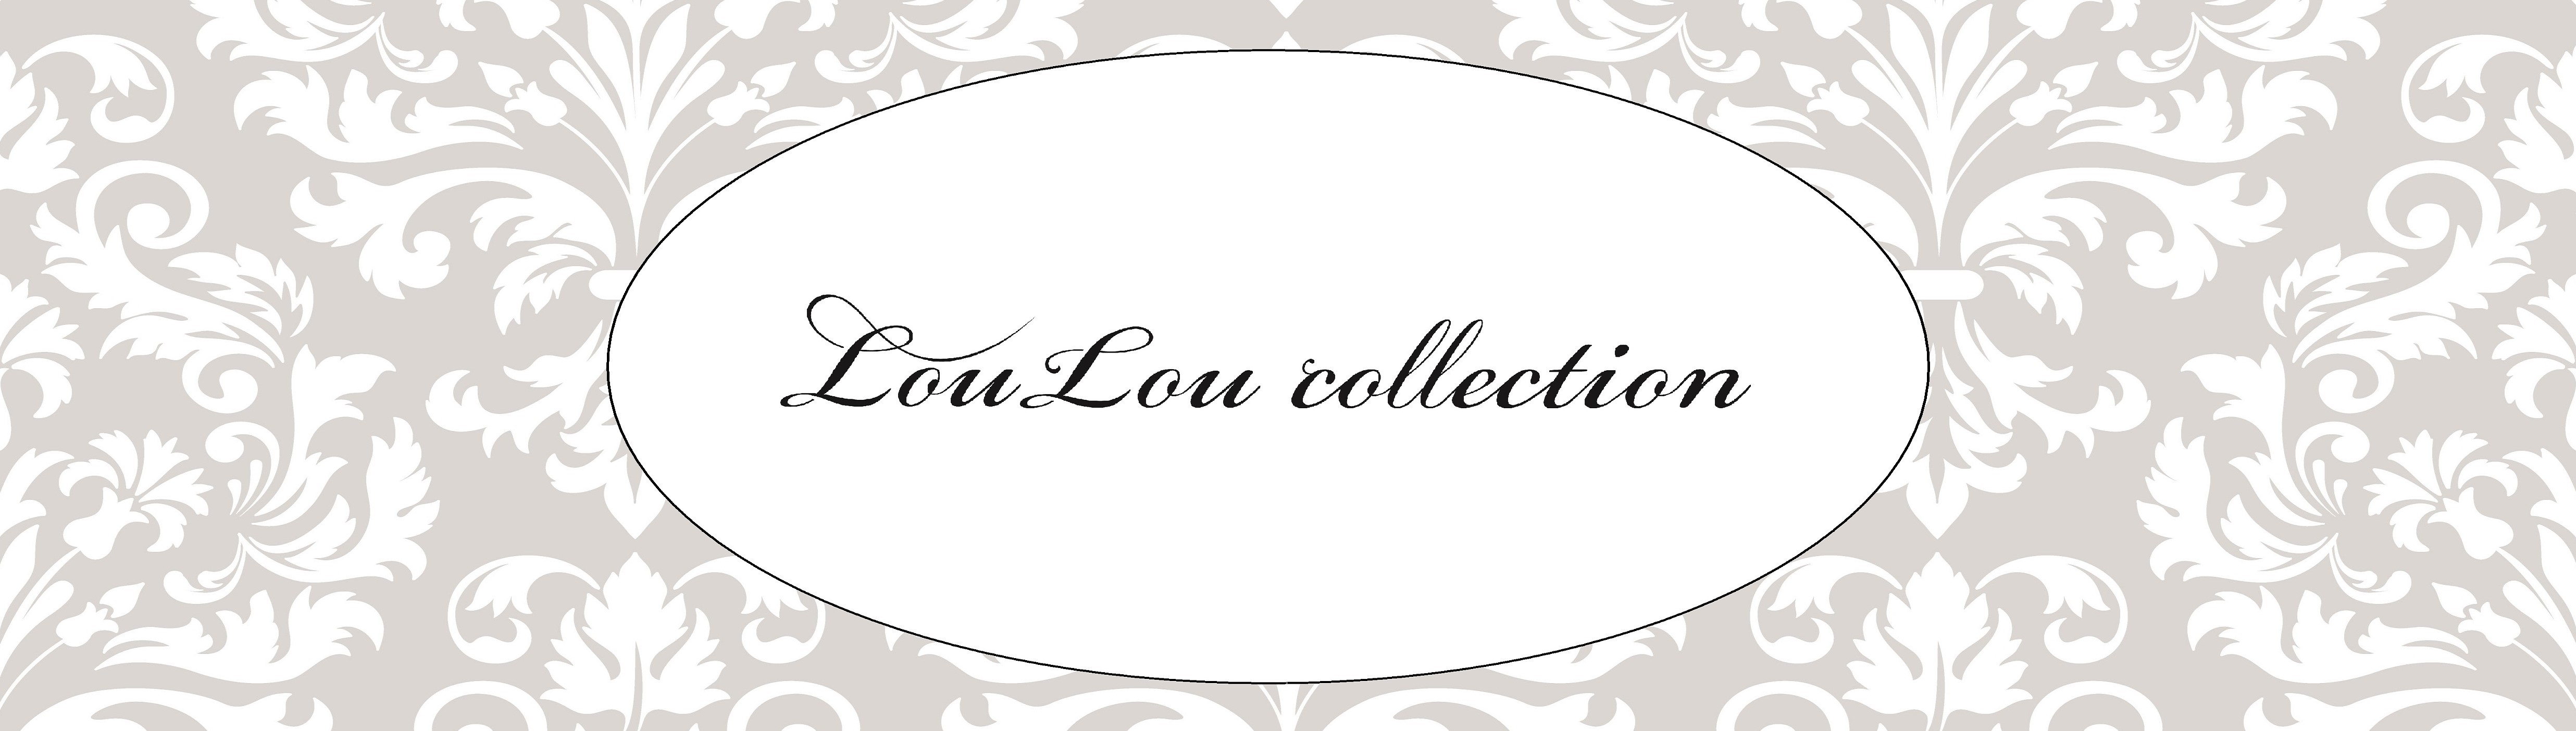 http://louloucollection-onlineshop.com/